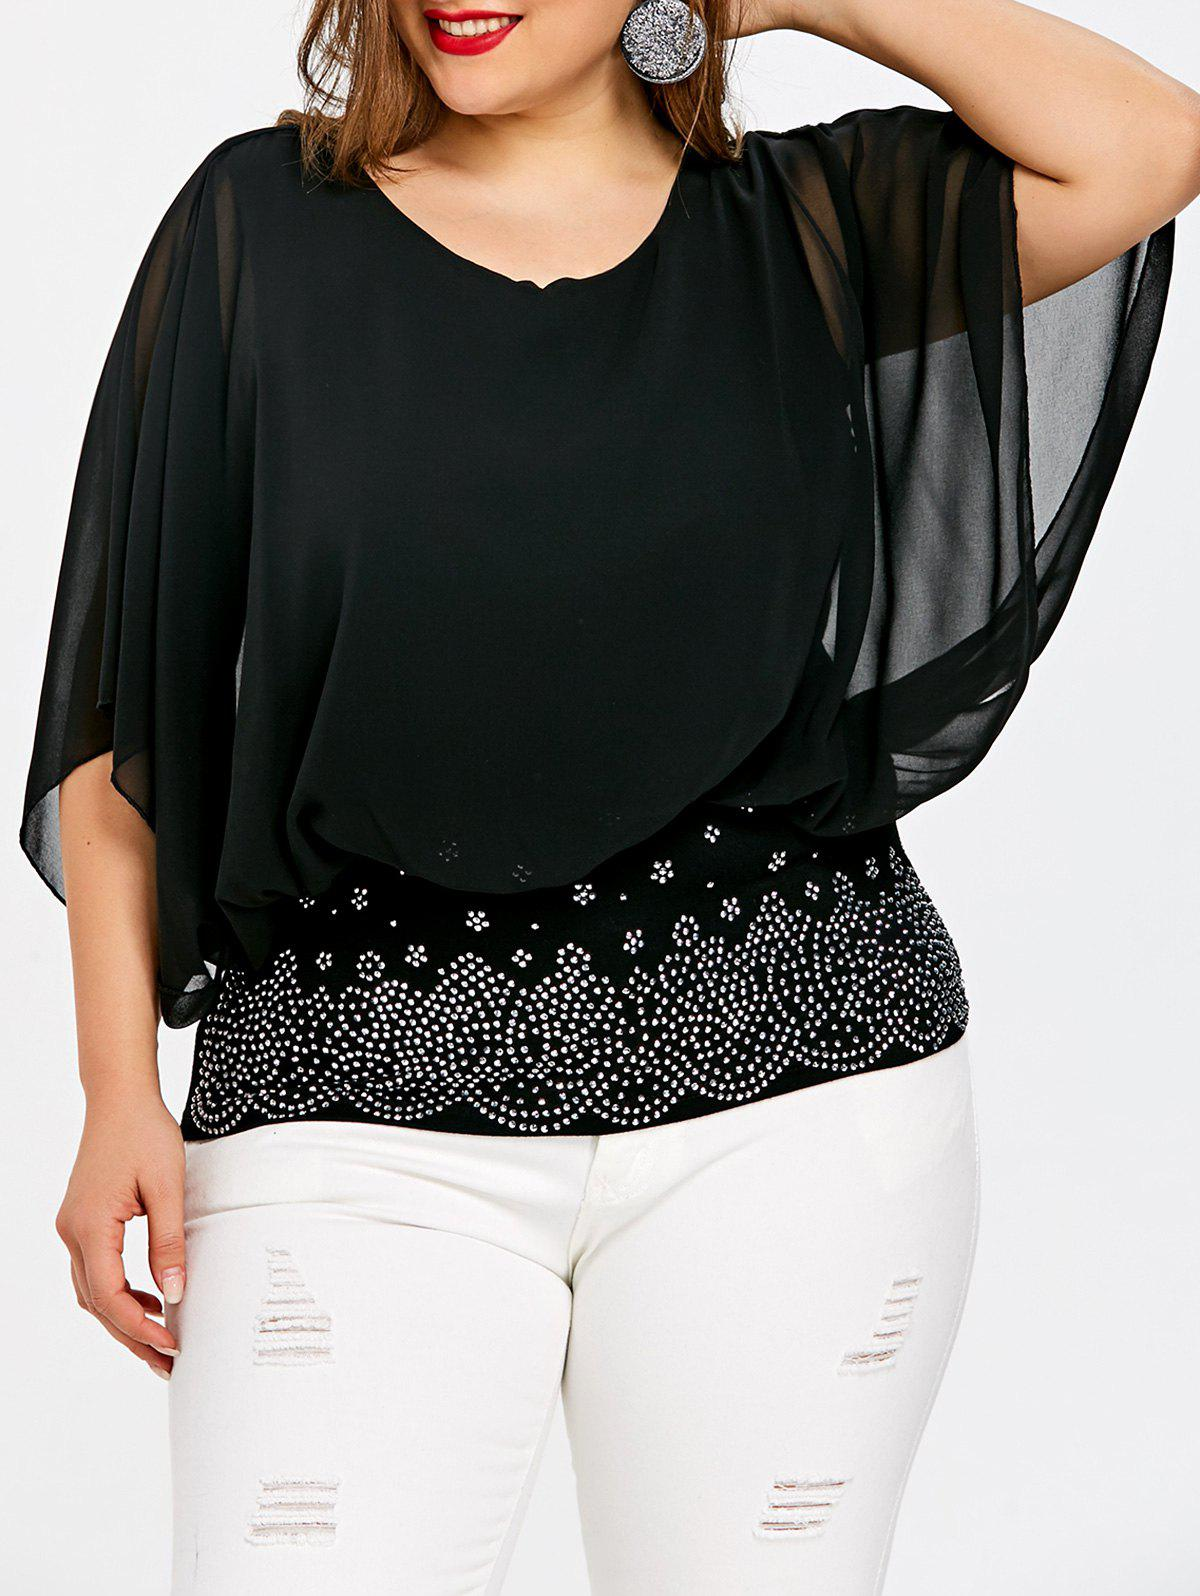 Plus Size Batwing Sleeve Rhinestone Embellished Blouse - BLACK XL